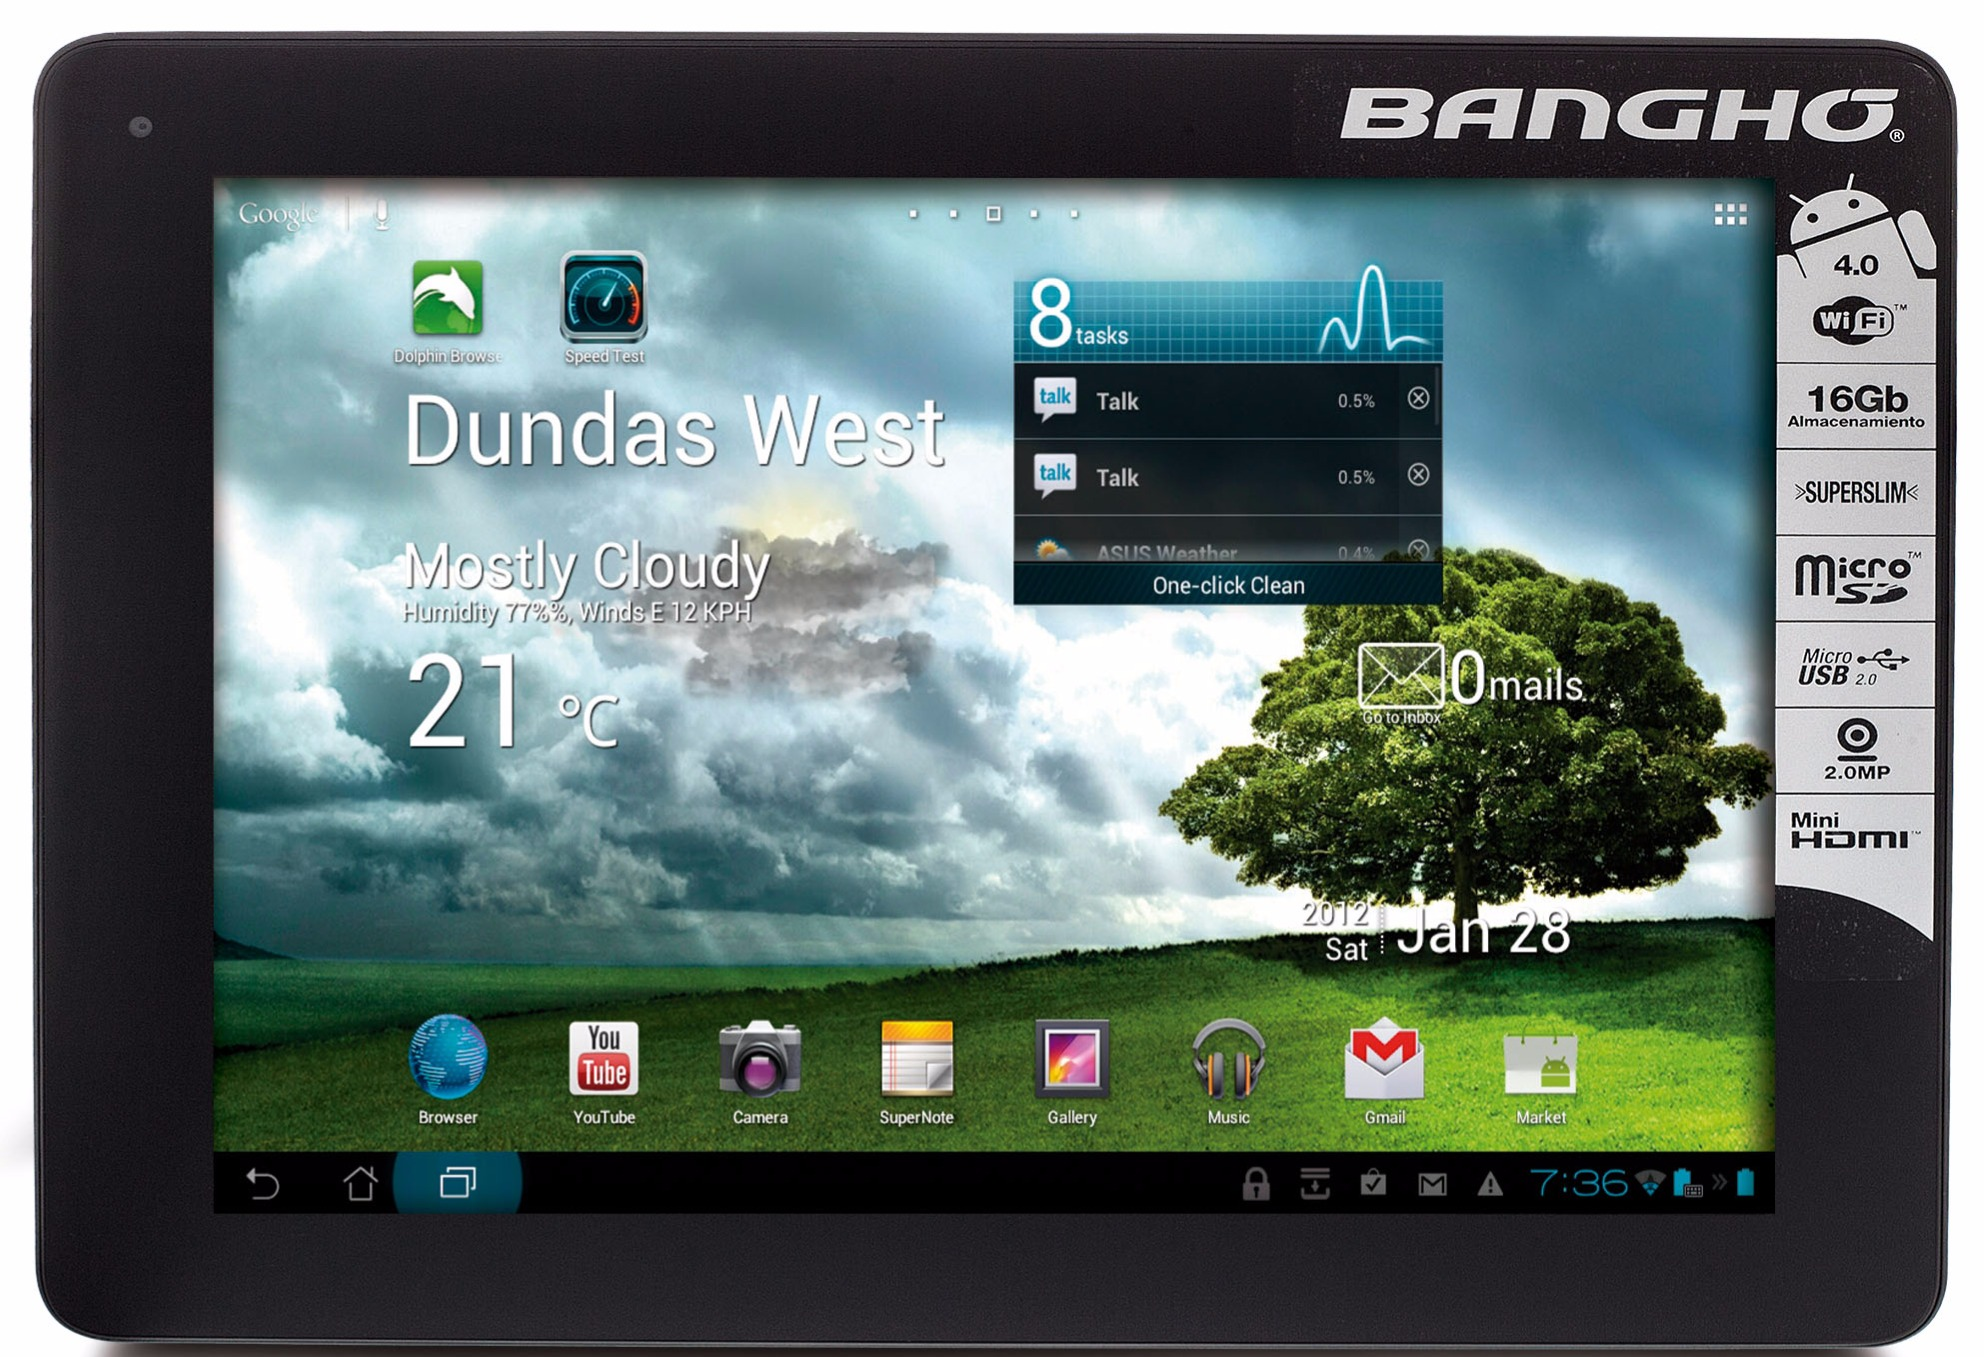 BANGHO AERO WINDOWS 7 64BIT DRIVER